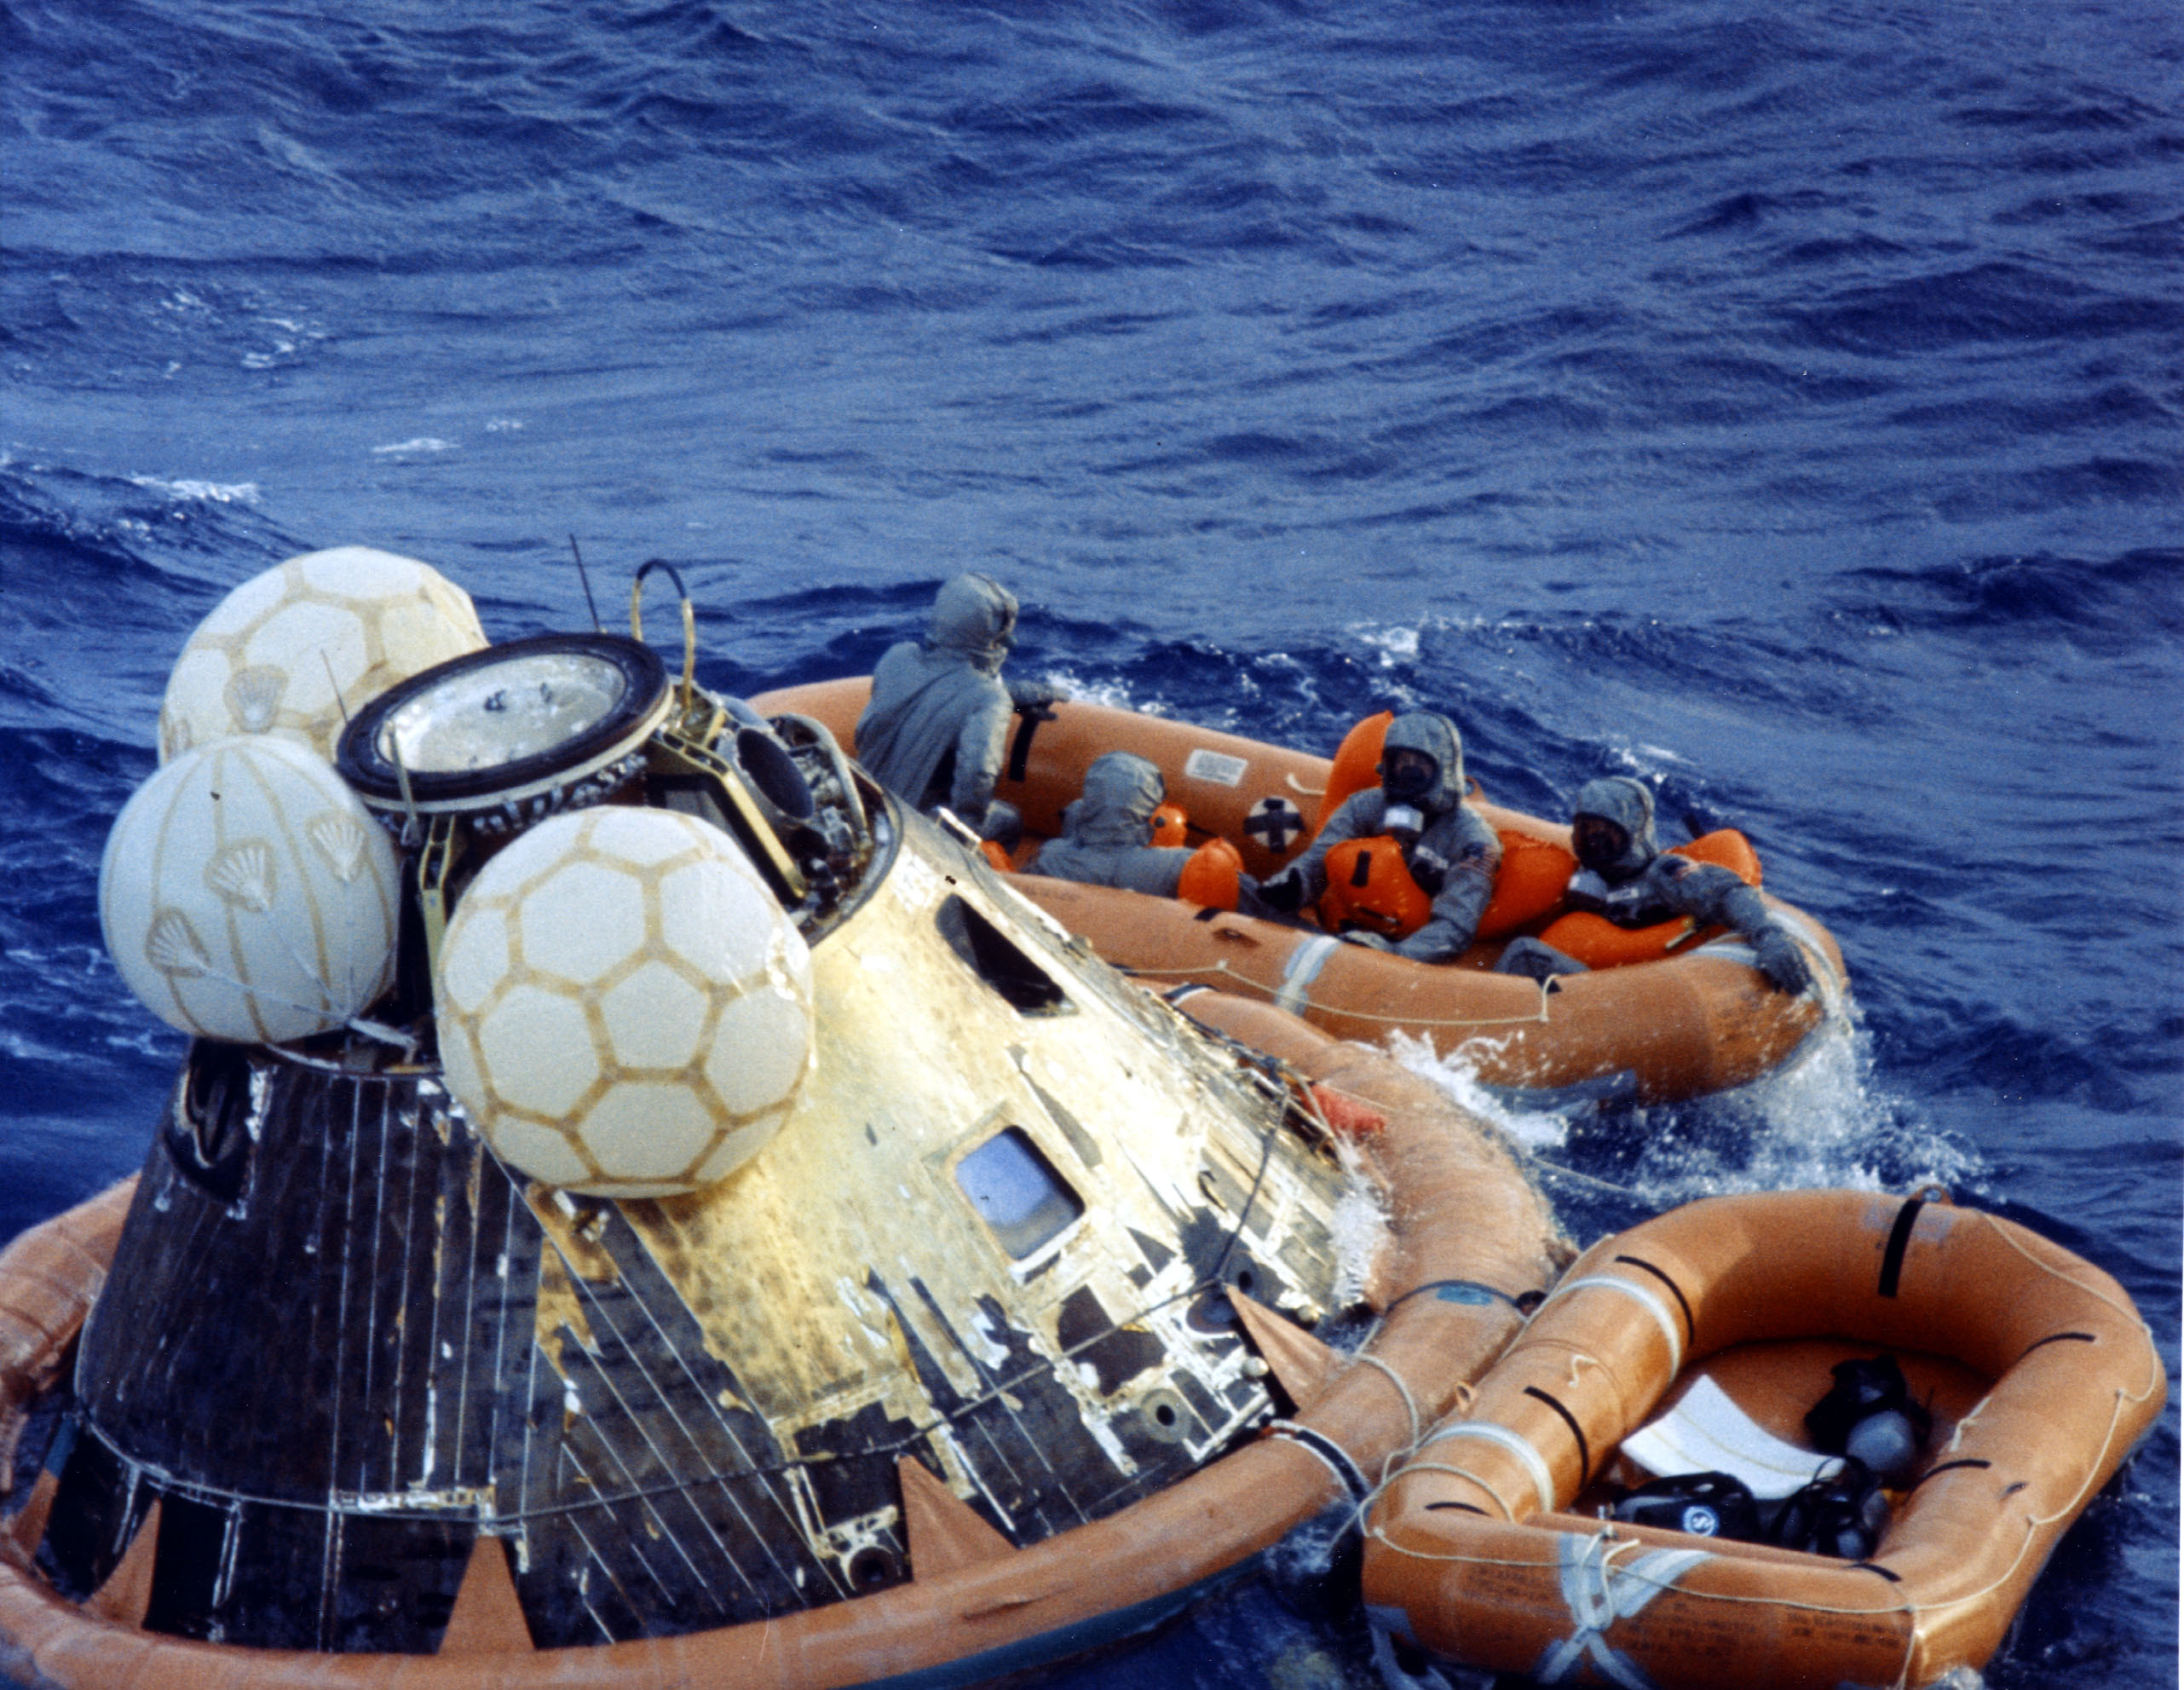 Apollo 11 after splashdown | The Planetary Society